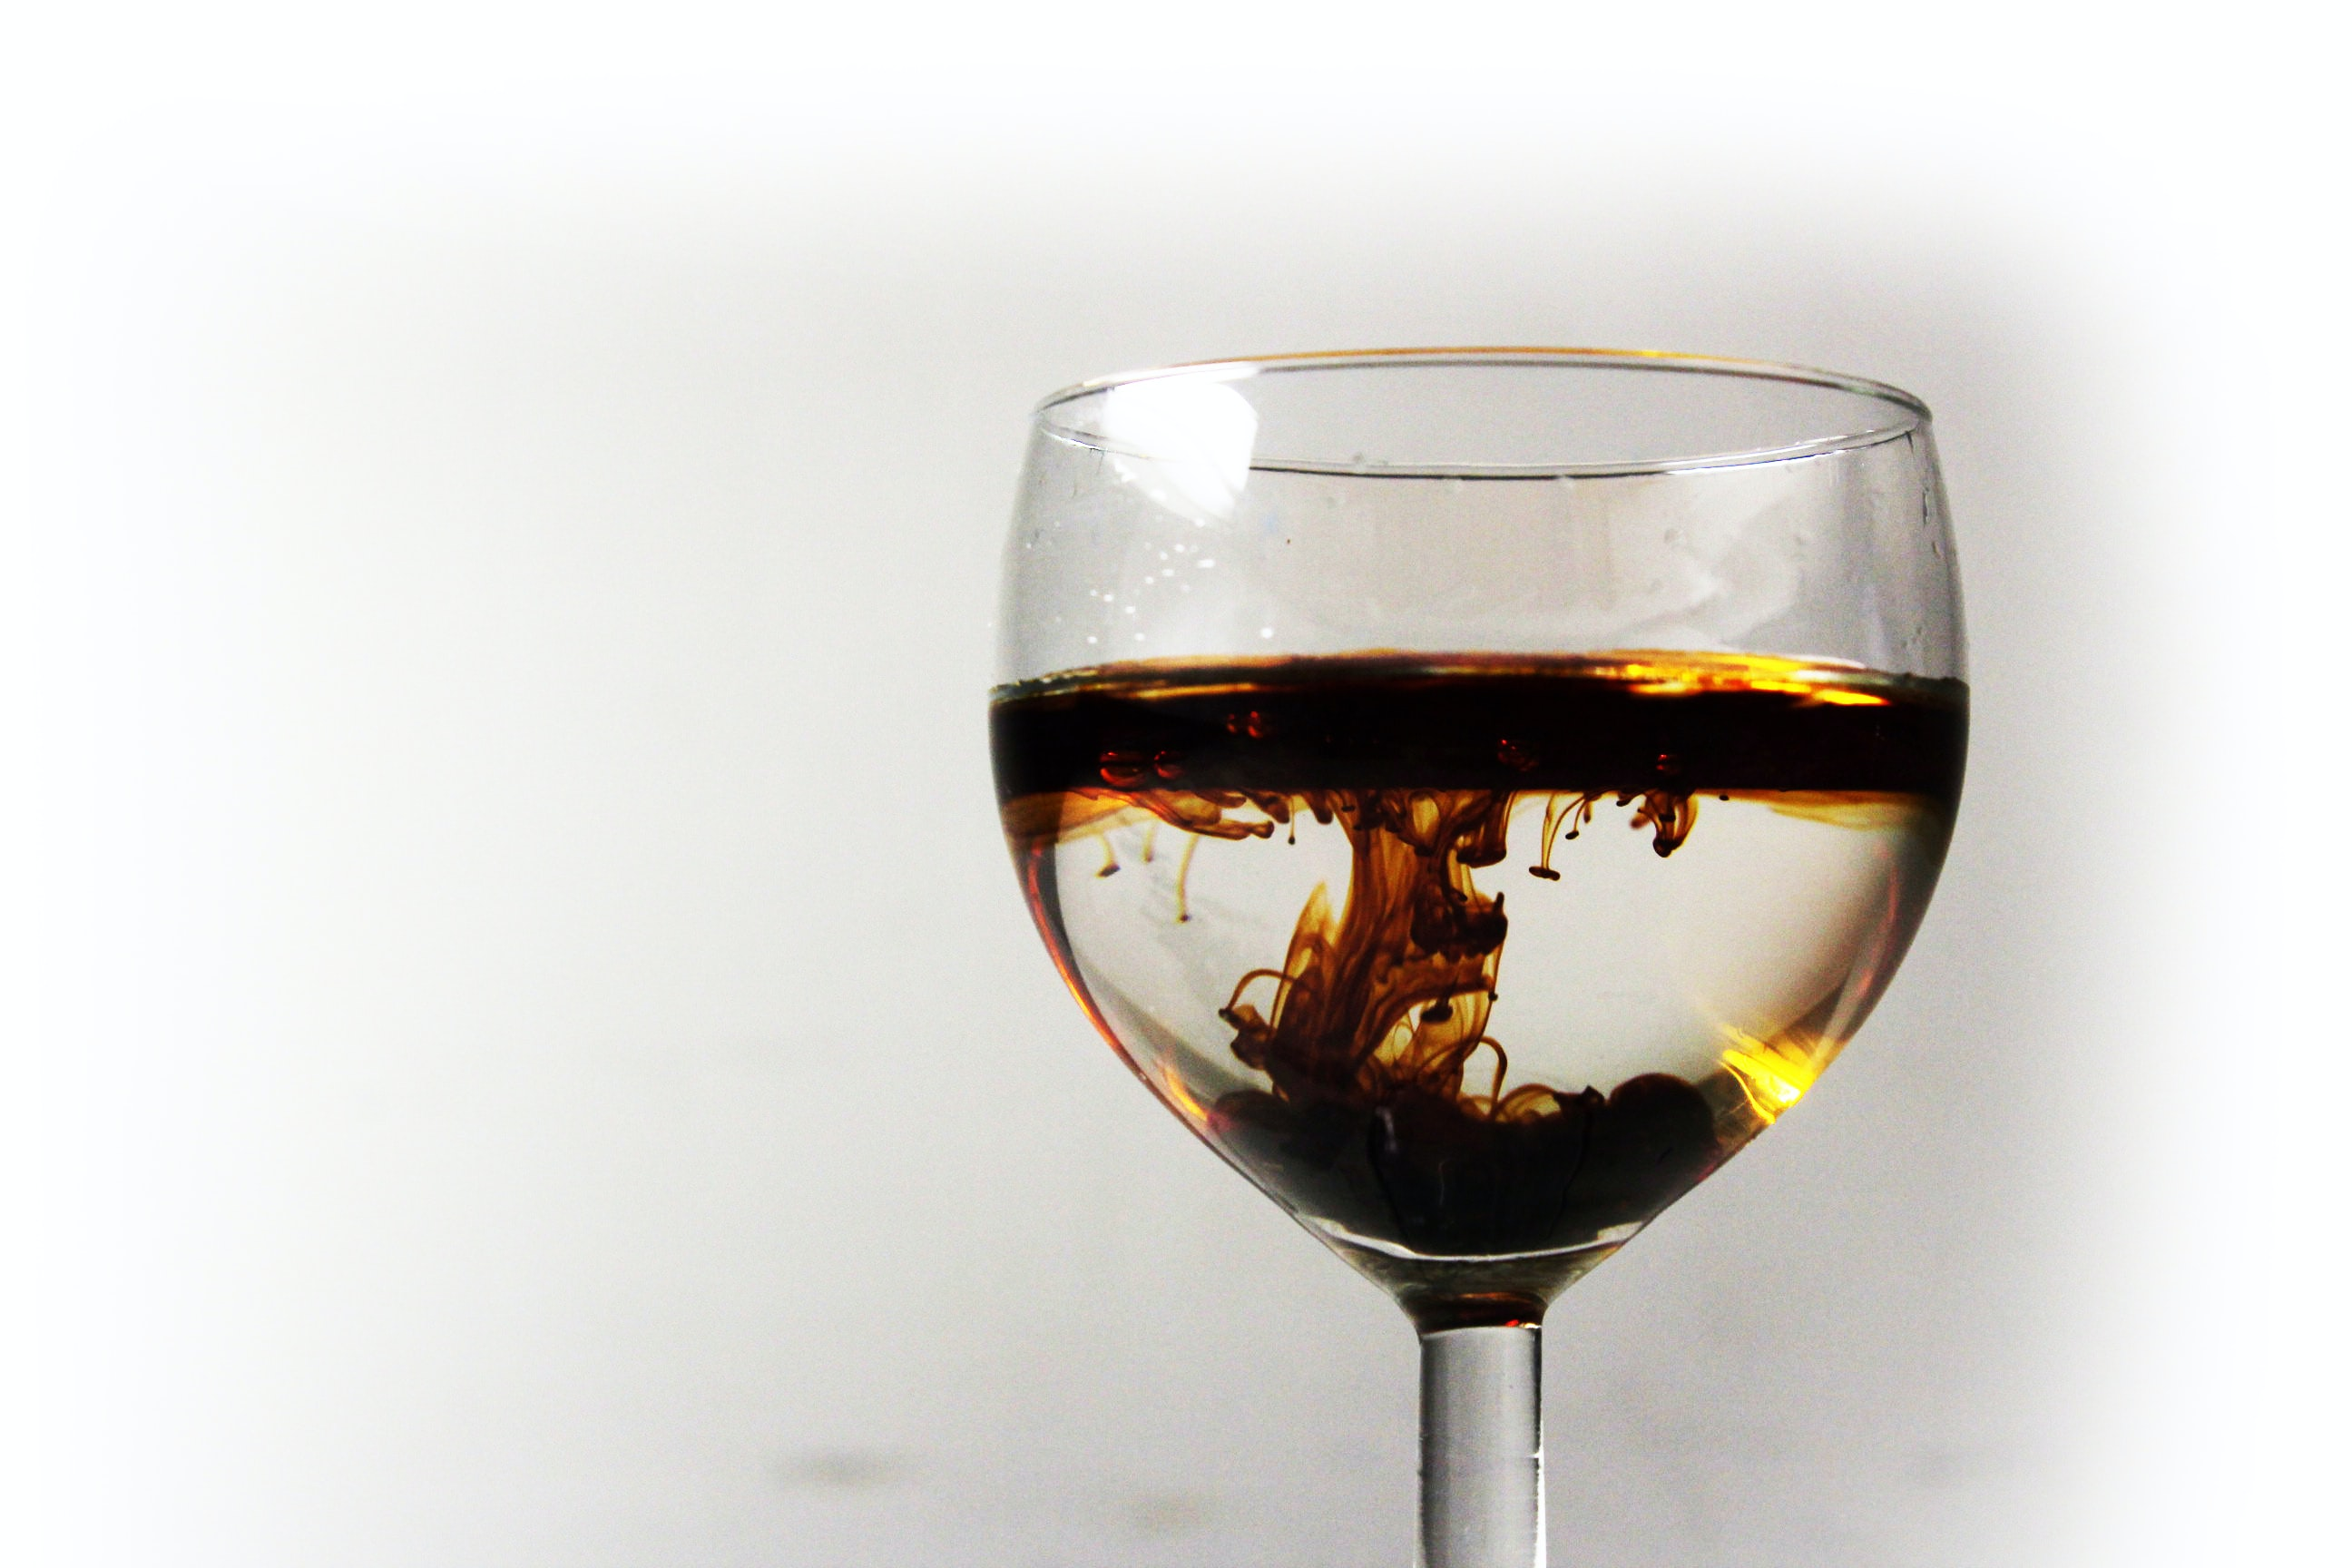 close up photography of clear long-stemmed wine glass